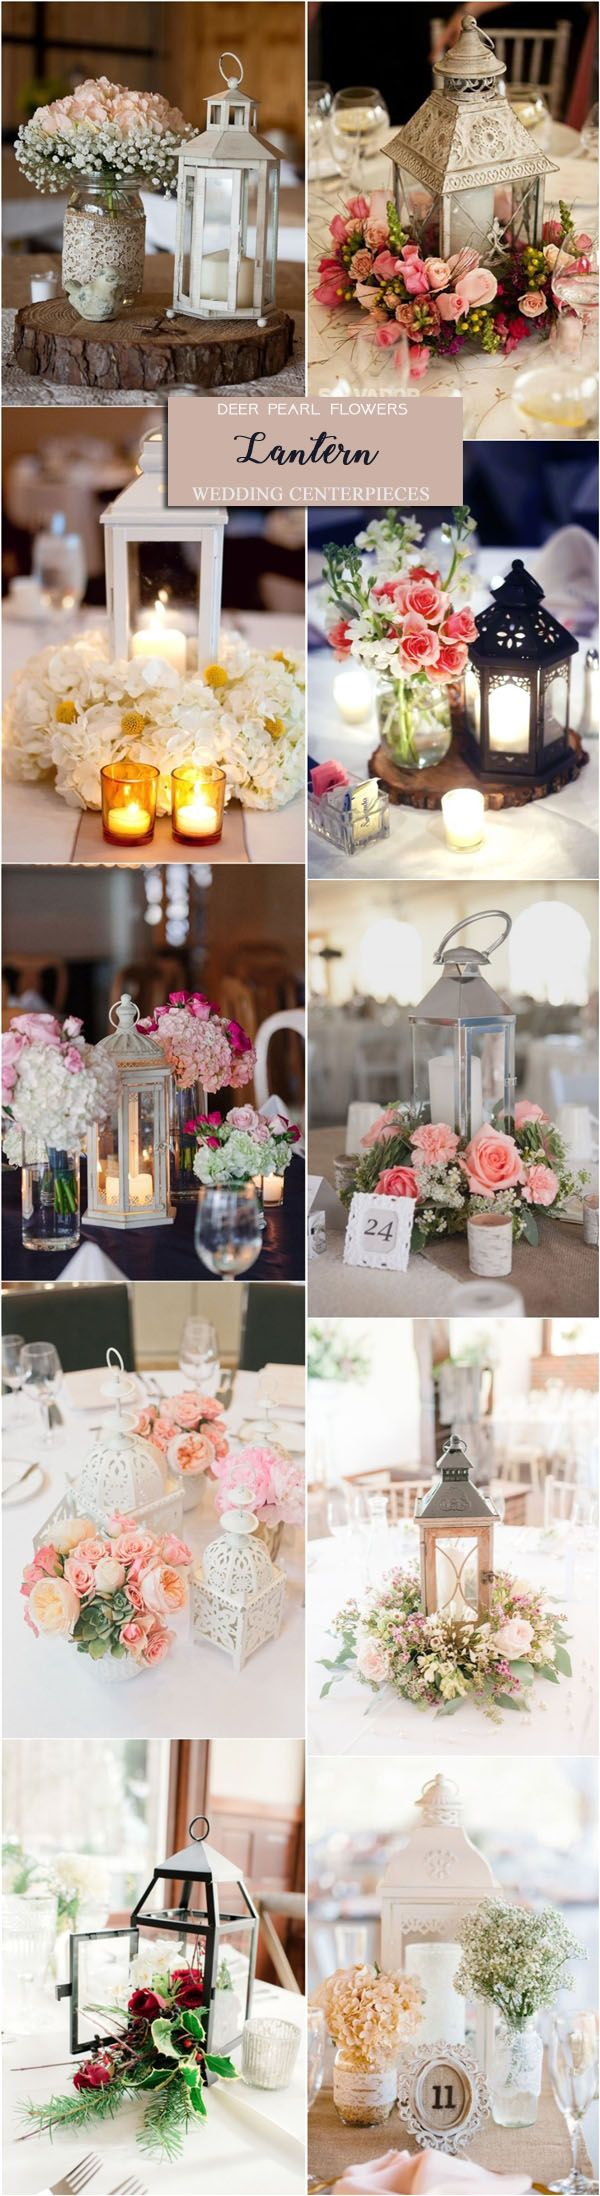 60 Insanely Wedding Centerpiece Ideas Youll Love